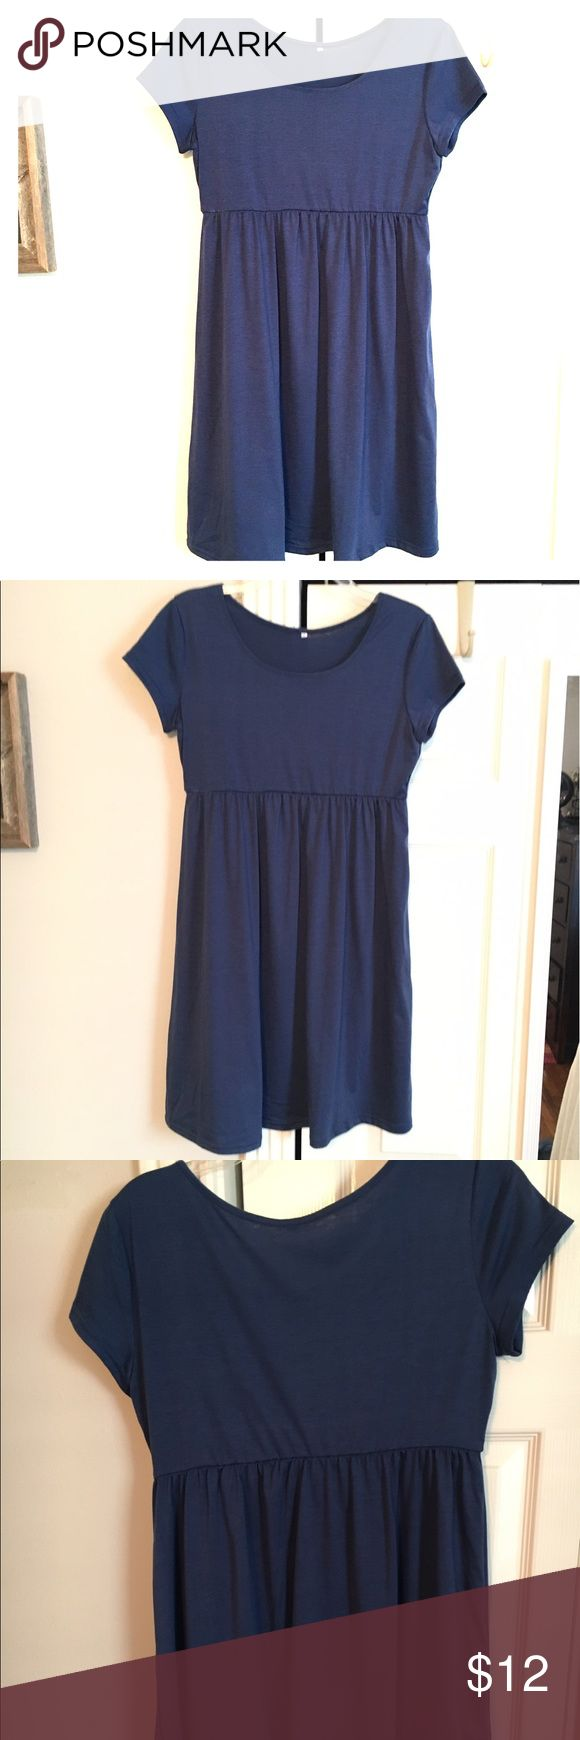 Pretty blue empire waist dress. Size M or 4 Cute blue dress! Goes with any season. Wear with boots and a jacket for fall or sandals for summer. It's brand new, but it didn't come with tags, and there is a little bit of deodorant on the inside from trying it on. It has an elastic, empire waist.  Measurements (all approx). Total length: 35, armpit to armpit: 16 Dresses Midi